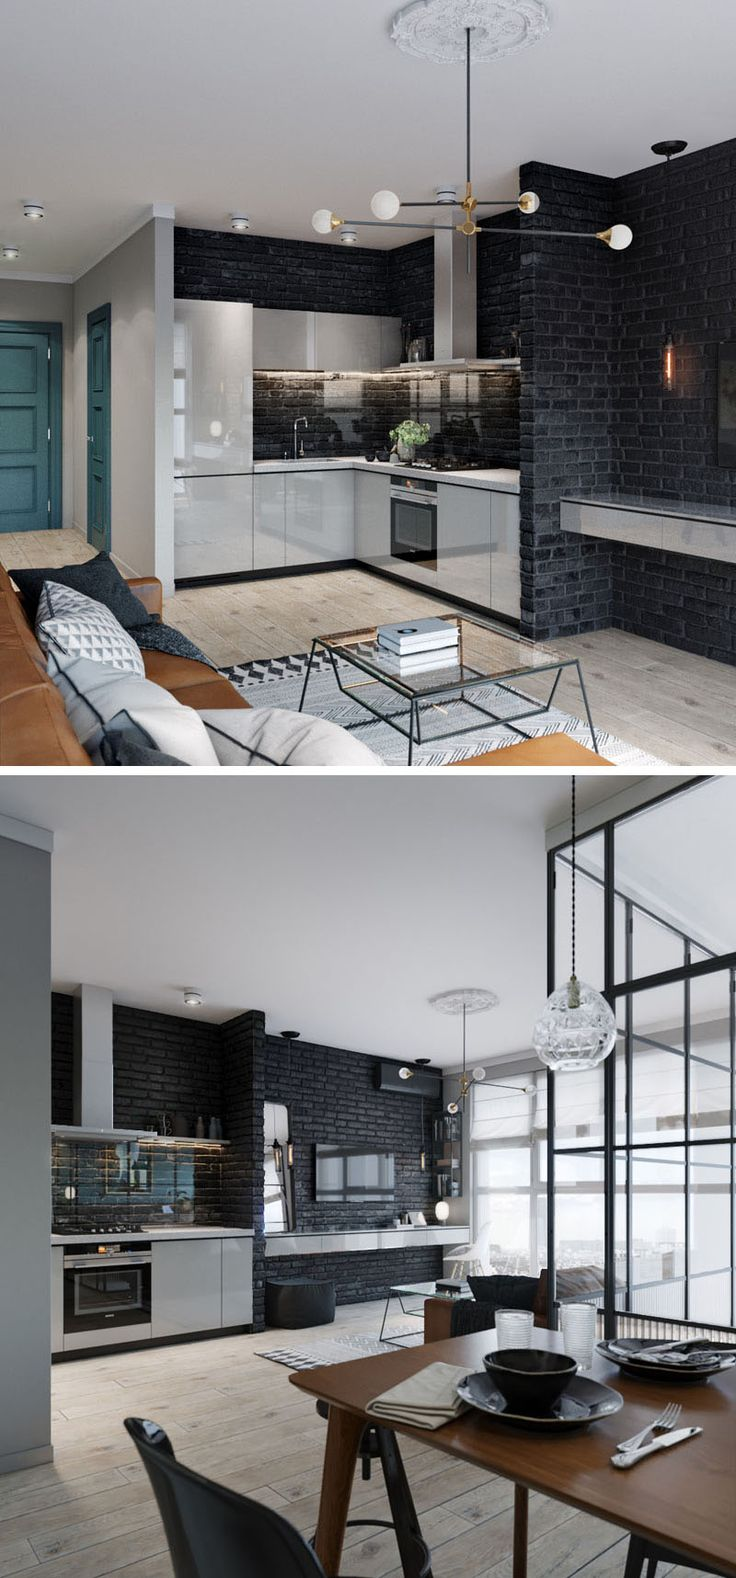 This small and modern apartment features a black brick wall that draws your eye to the living area and kitchen. A white floating shelf in the living room doubles as a desk, and the white continues in the kitchen, where white cabinetry provides storage and conceals the refrigerator. A glass backsplash in the kitchen protects the brick and adds to the seamless look.